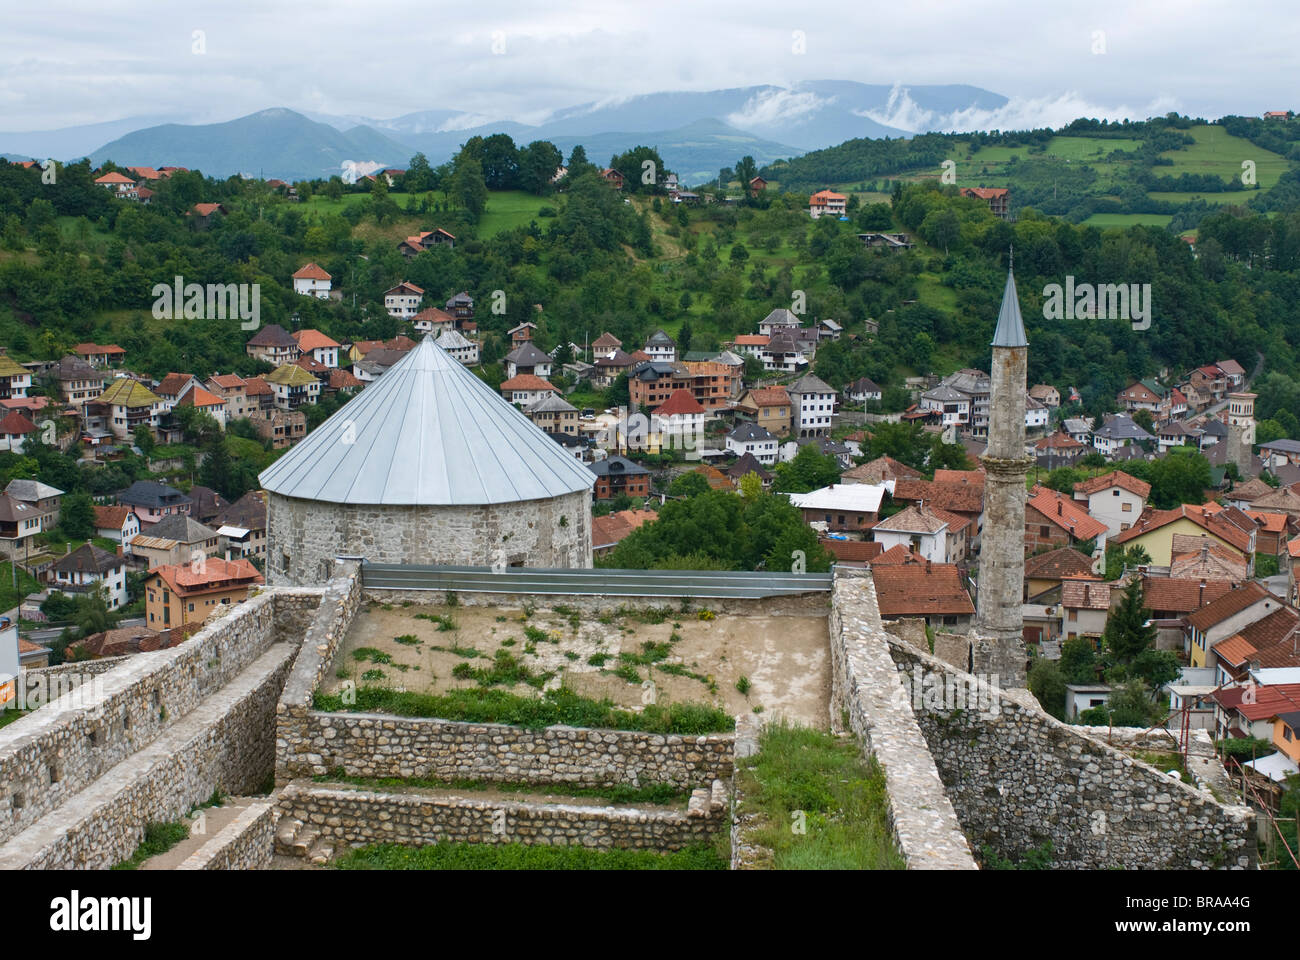 Medieval Castle with minaret, Travnik, Bosnia-Herzegovina, Europe - Stock Image